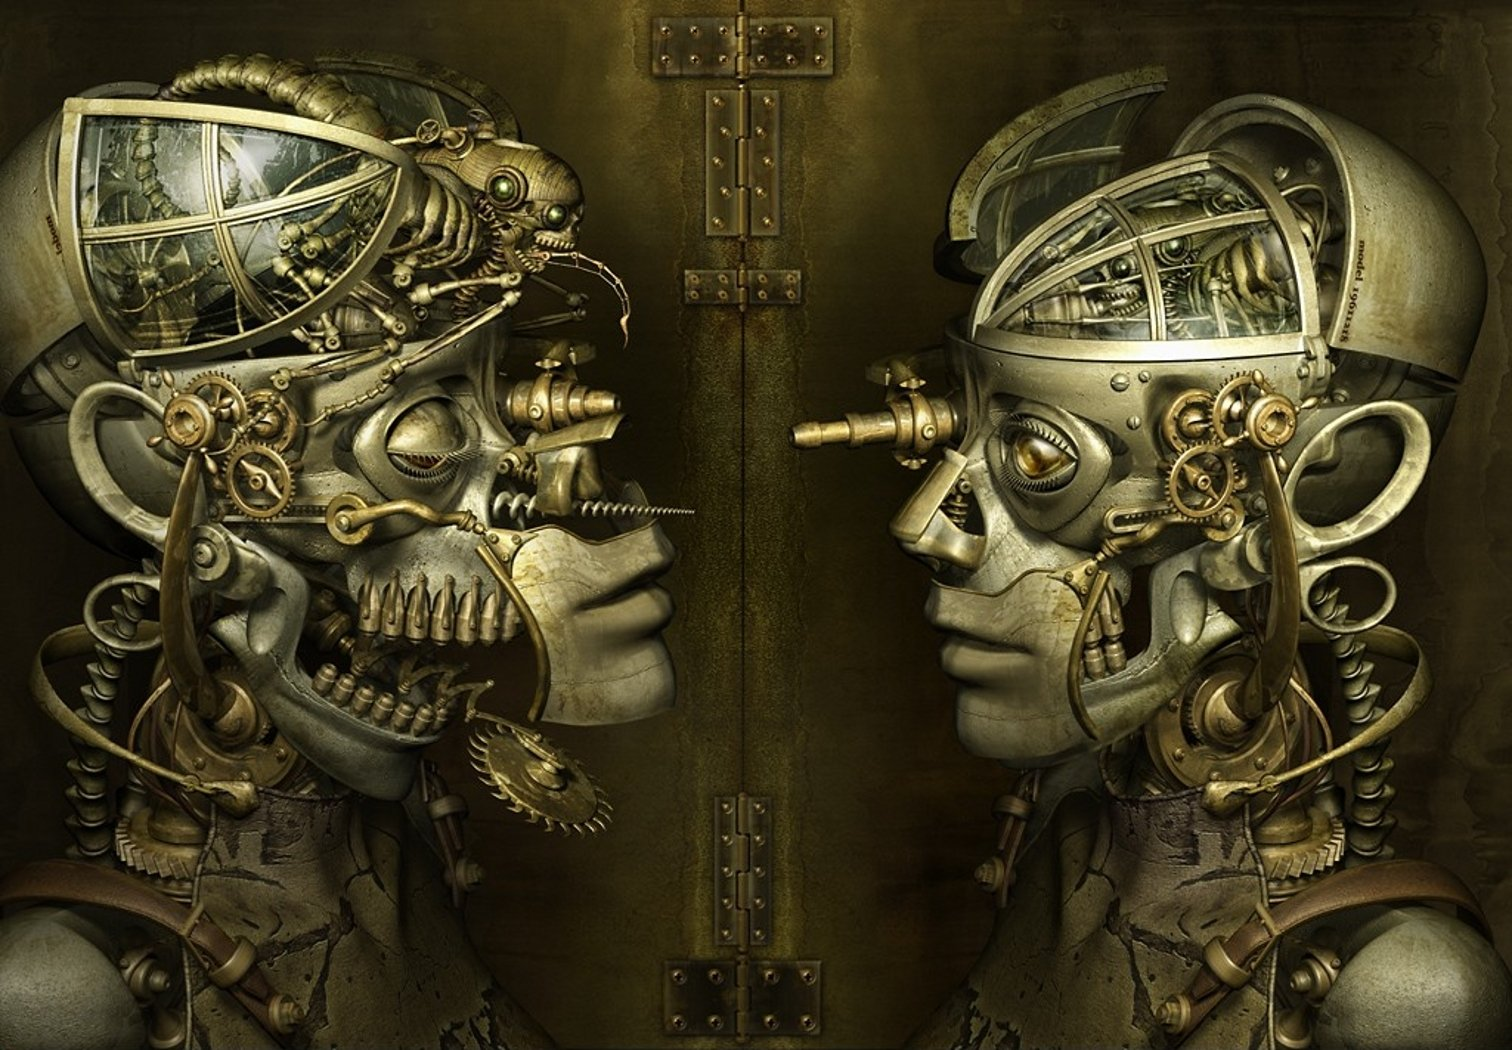 325 Steampunk Hd Wallpapers Background Images Wallpaper Abyss